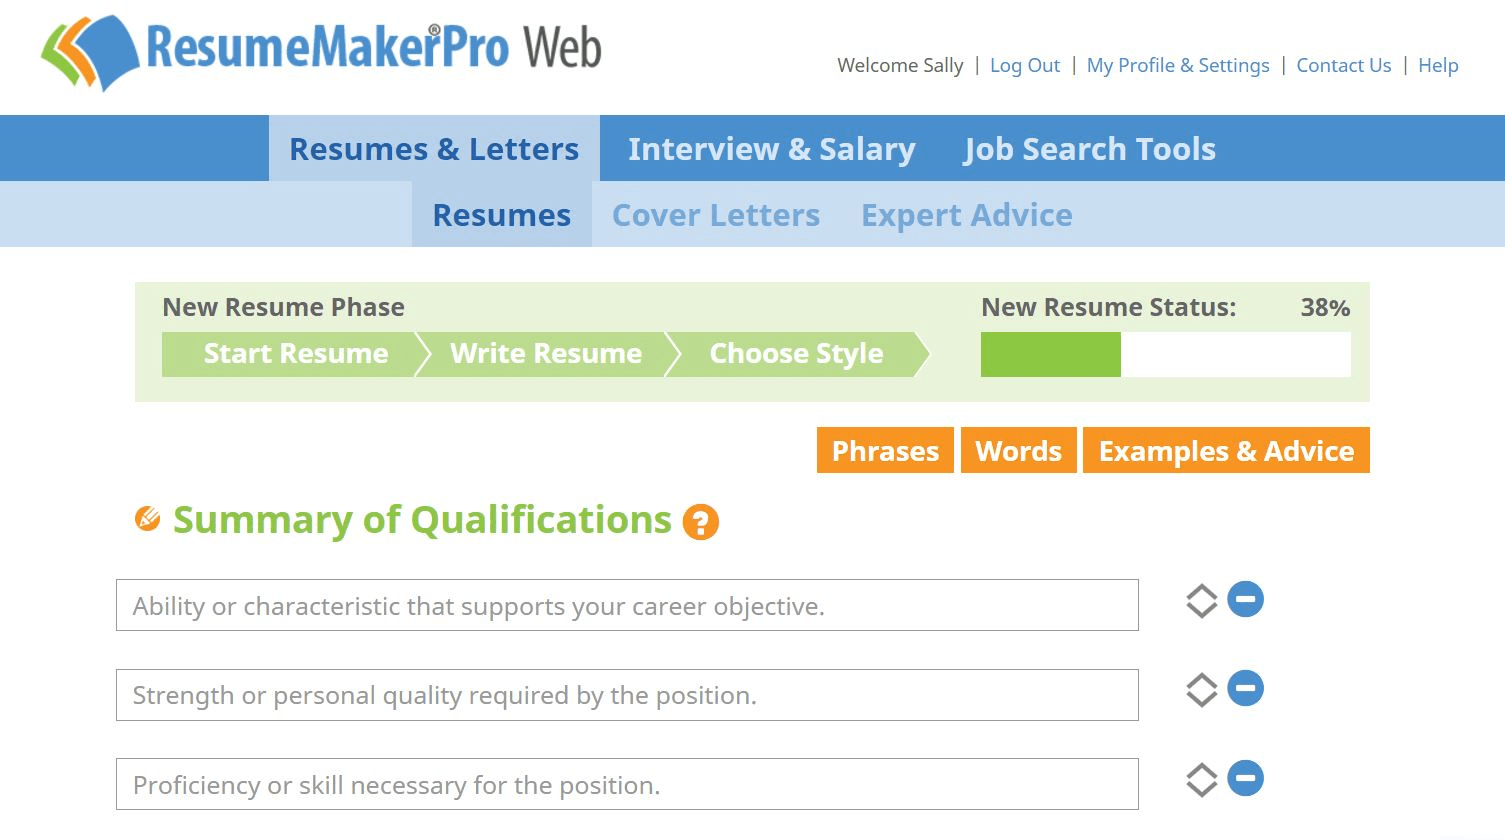 Resume Builder Software Download Pc Resumemakerpro Web Annual Subscription Job Search And Business